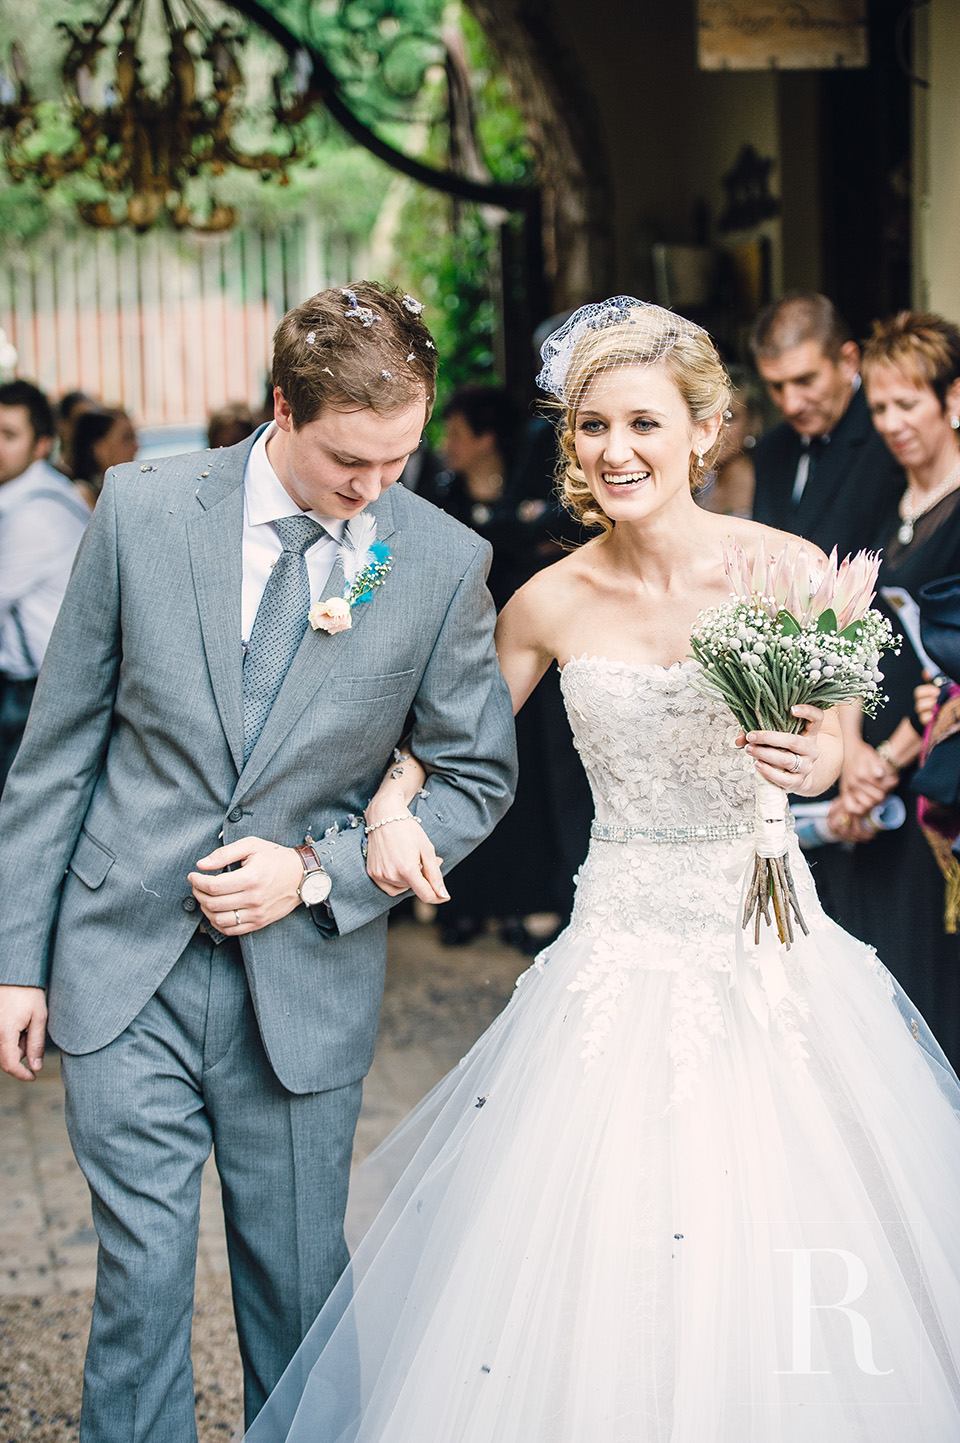 RYAN PARKER_WEDDING PHOTOGRAPHER_JOHANNESBURG_MORRELLS_M&M-2056.jpg